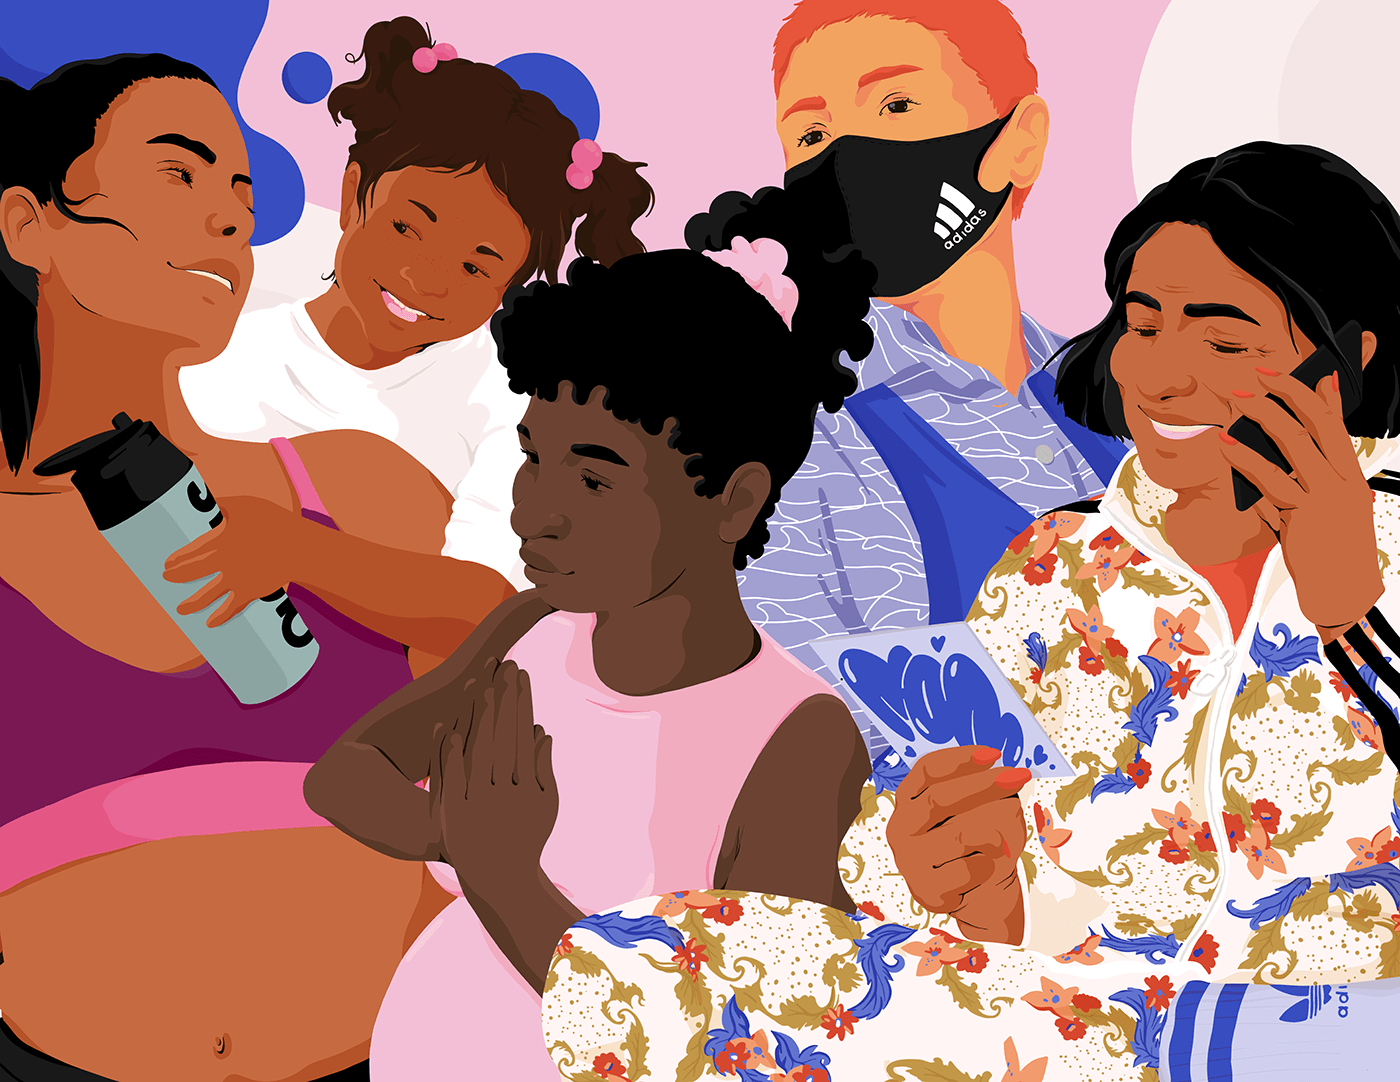 Divers womxn and mothers in colorful clothes form adidas.